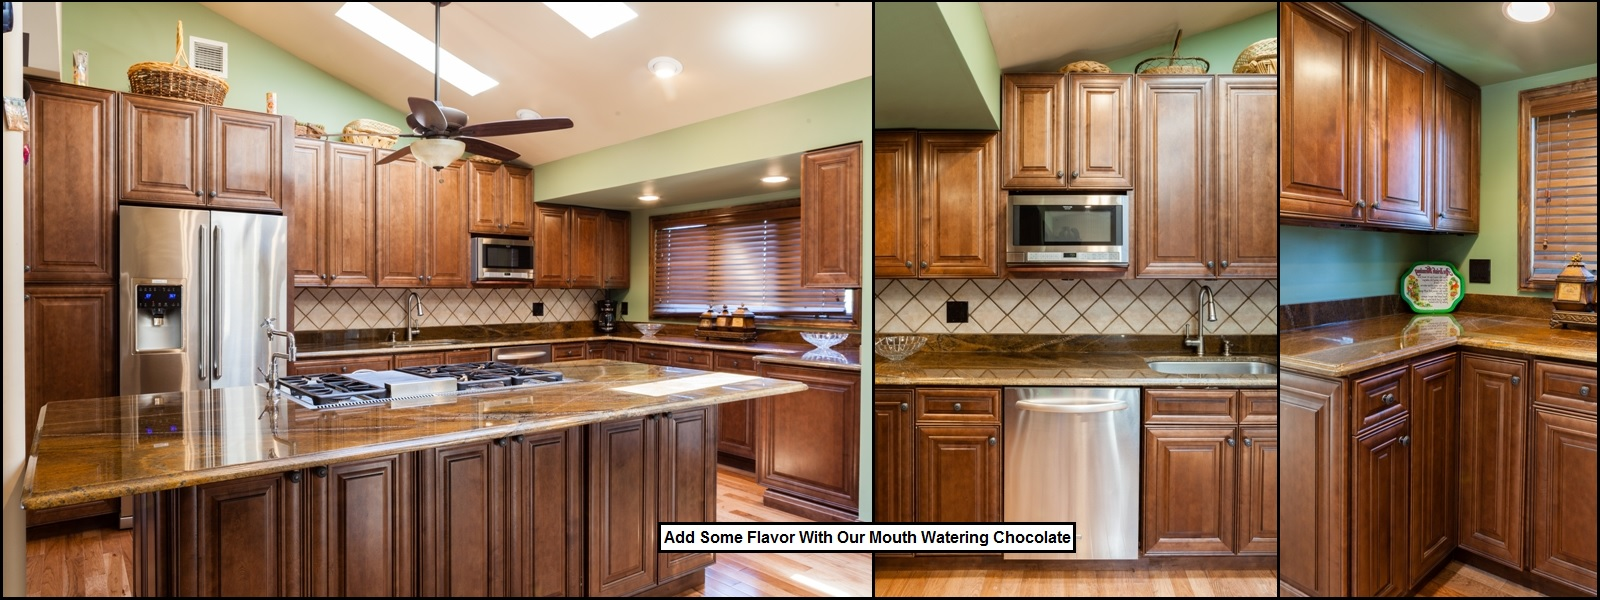 Scottsdale high quality kitchen and cabinets countertops - Quality kitchen cabinets ...